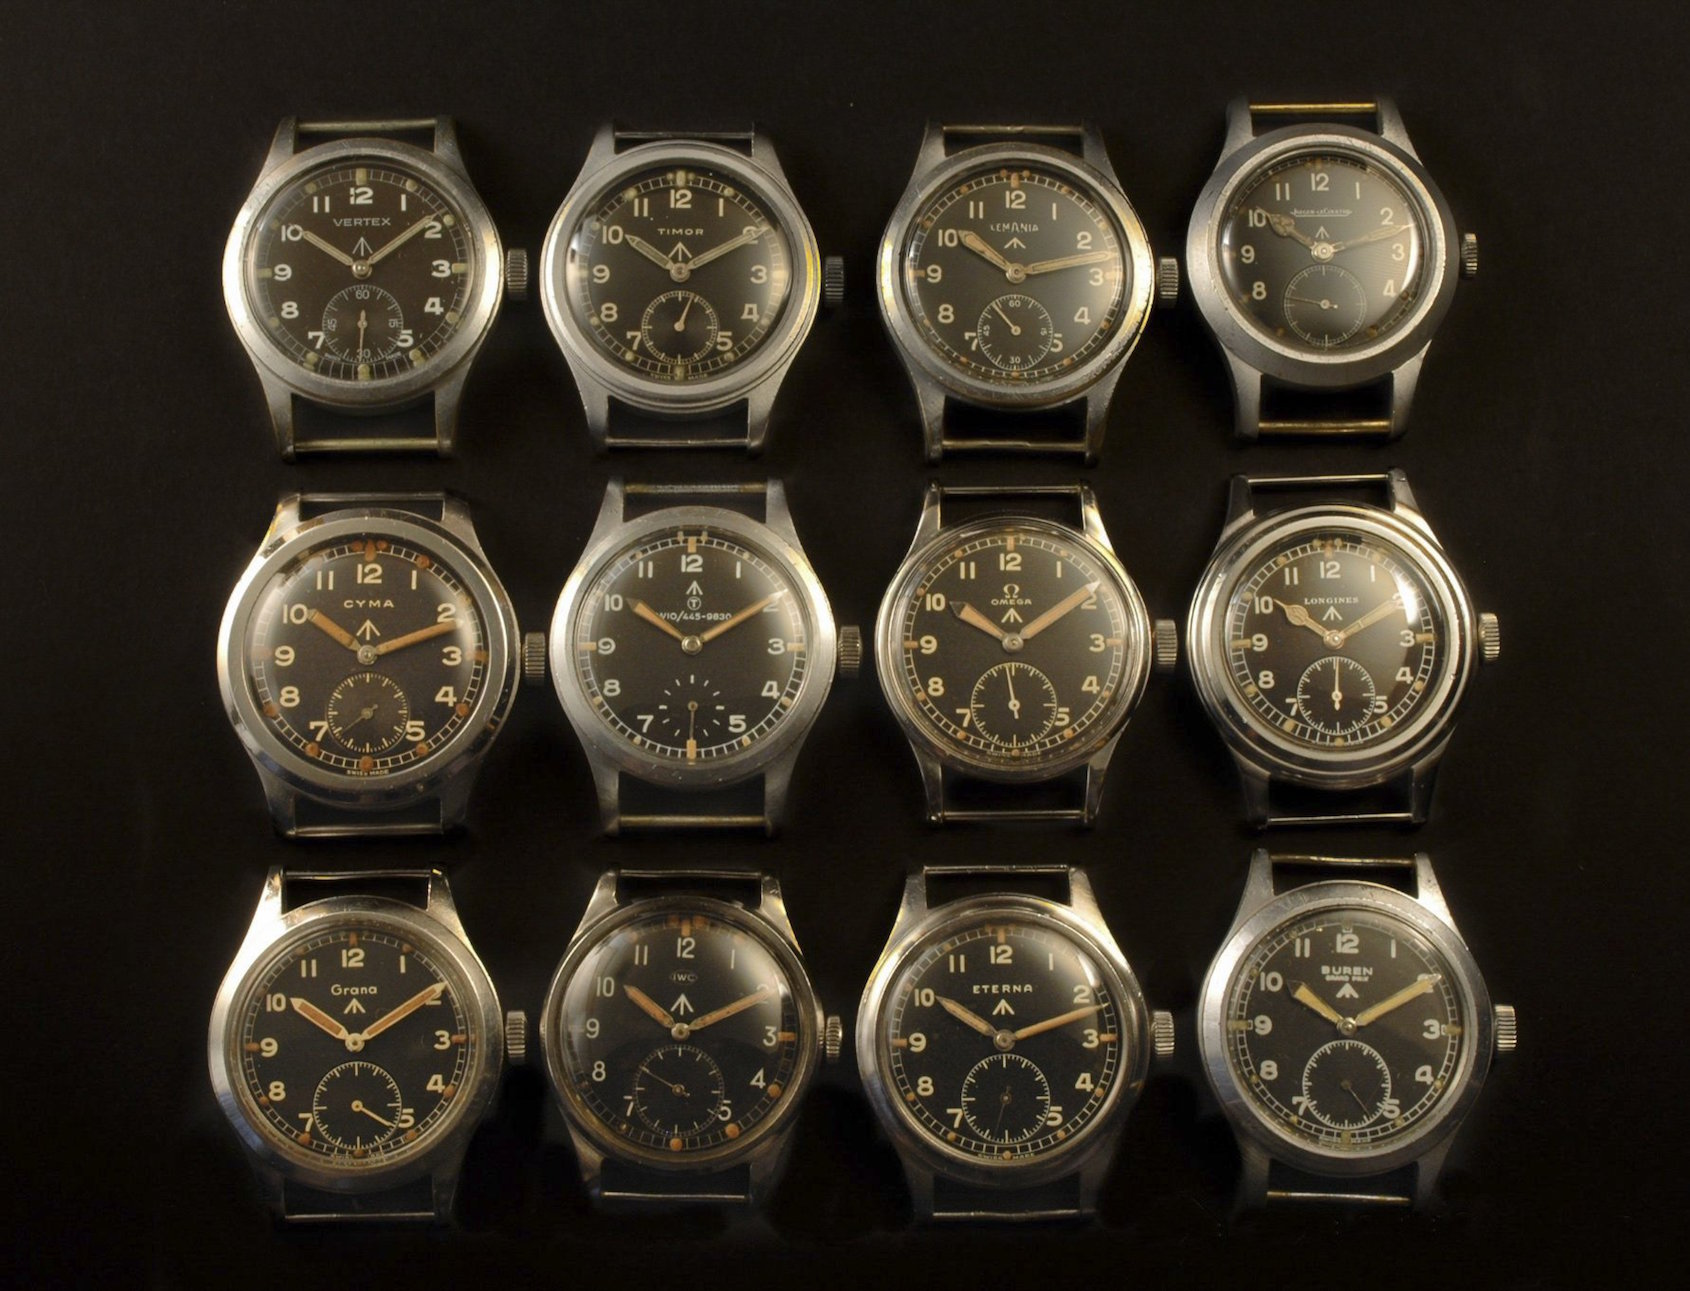 Dirty Dozen British World War 2 Military Watches - Which of the dirty dozen survive today?